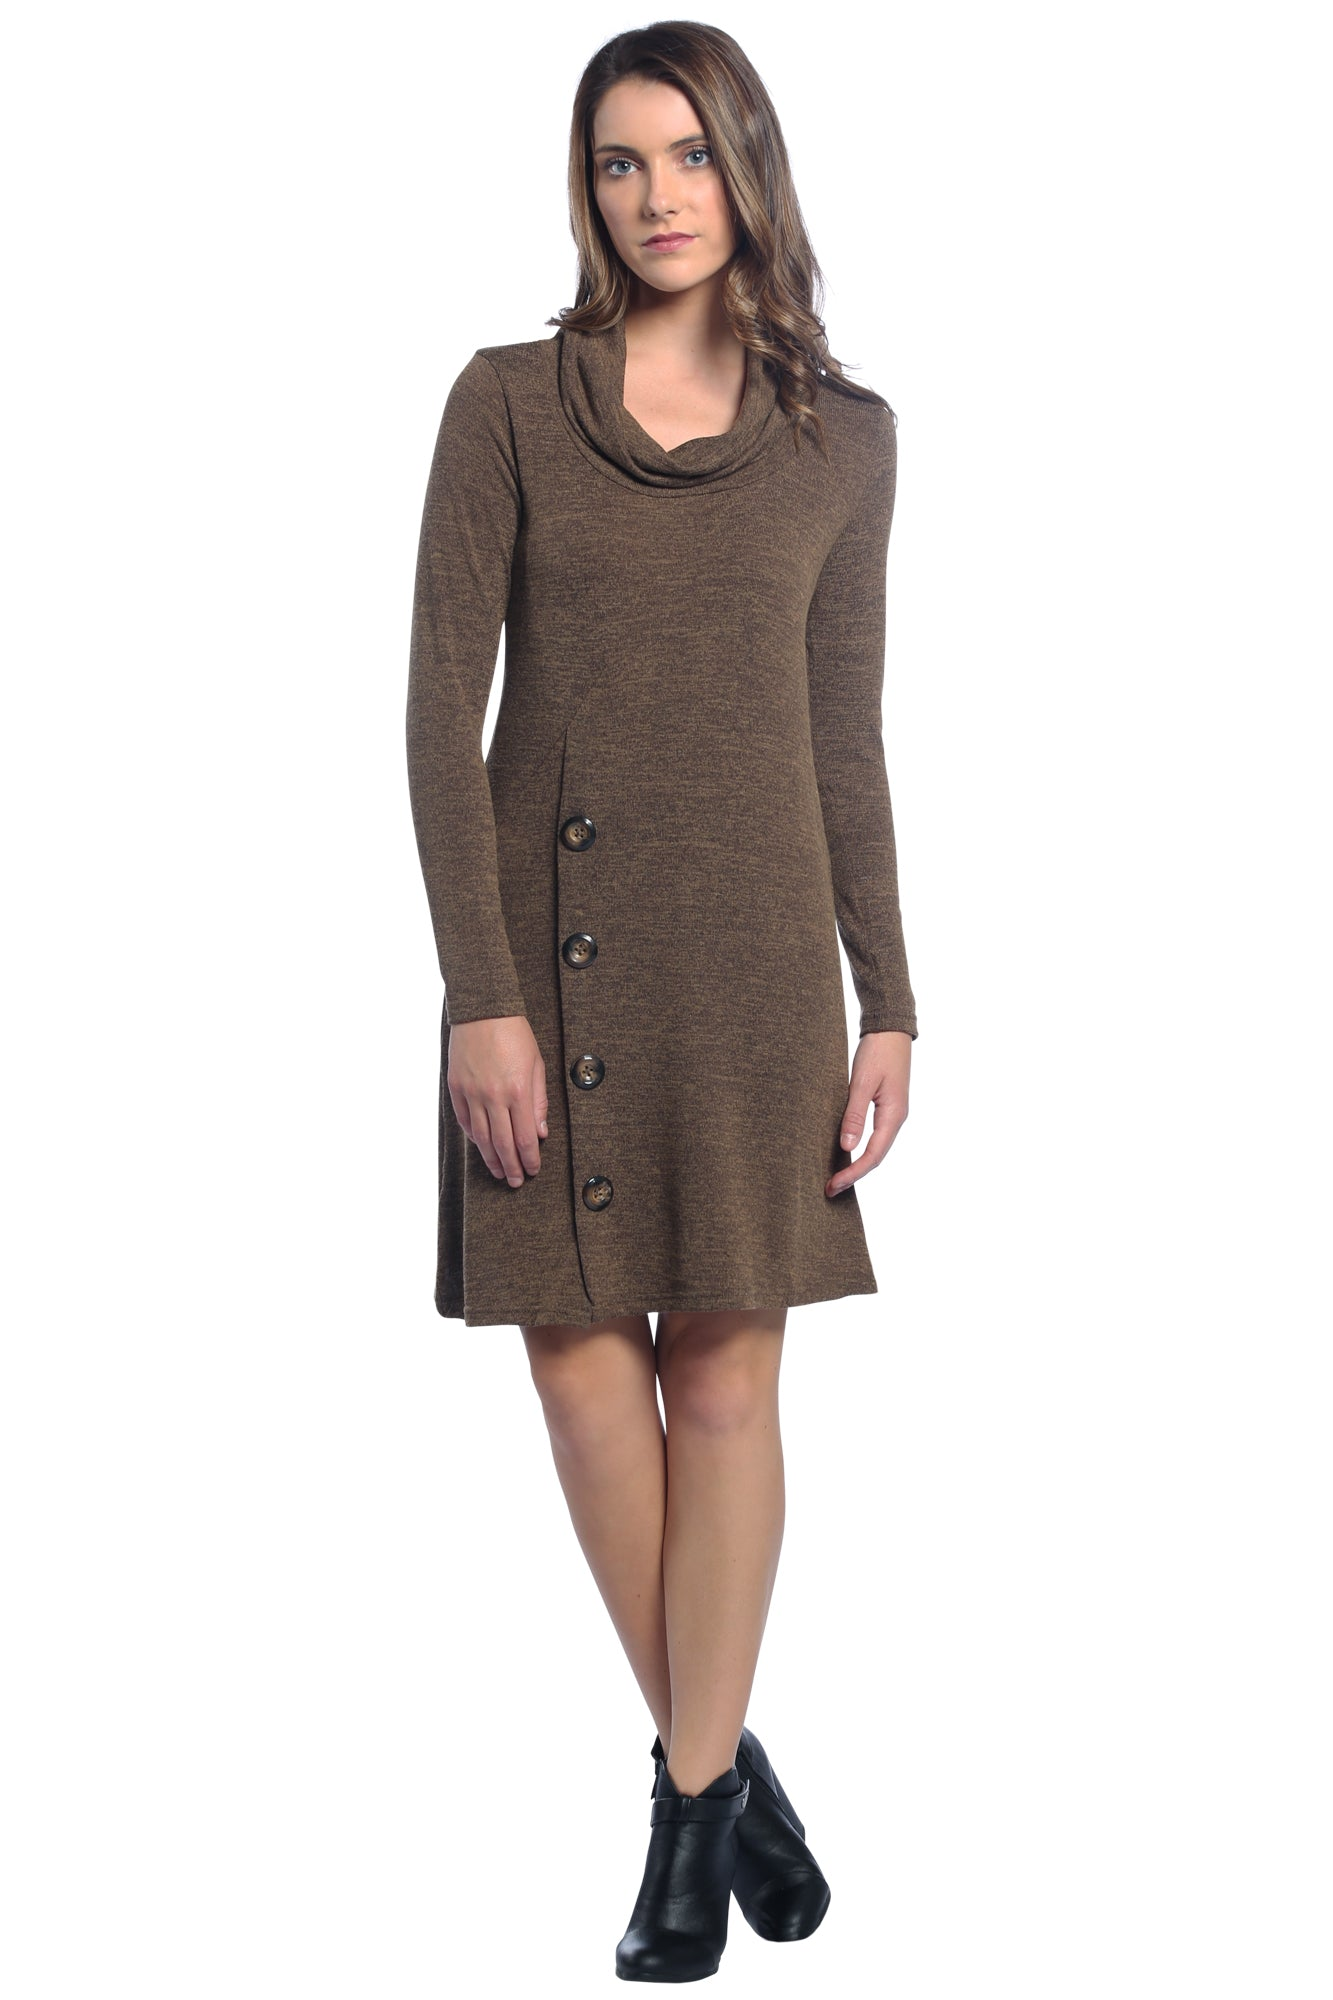 Brown Sweater Dress